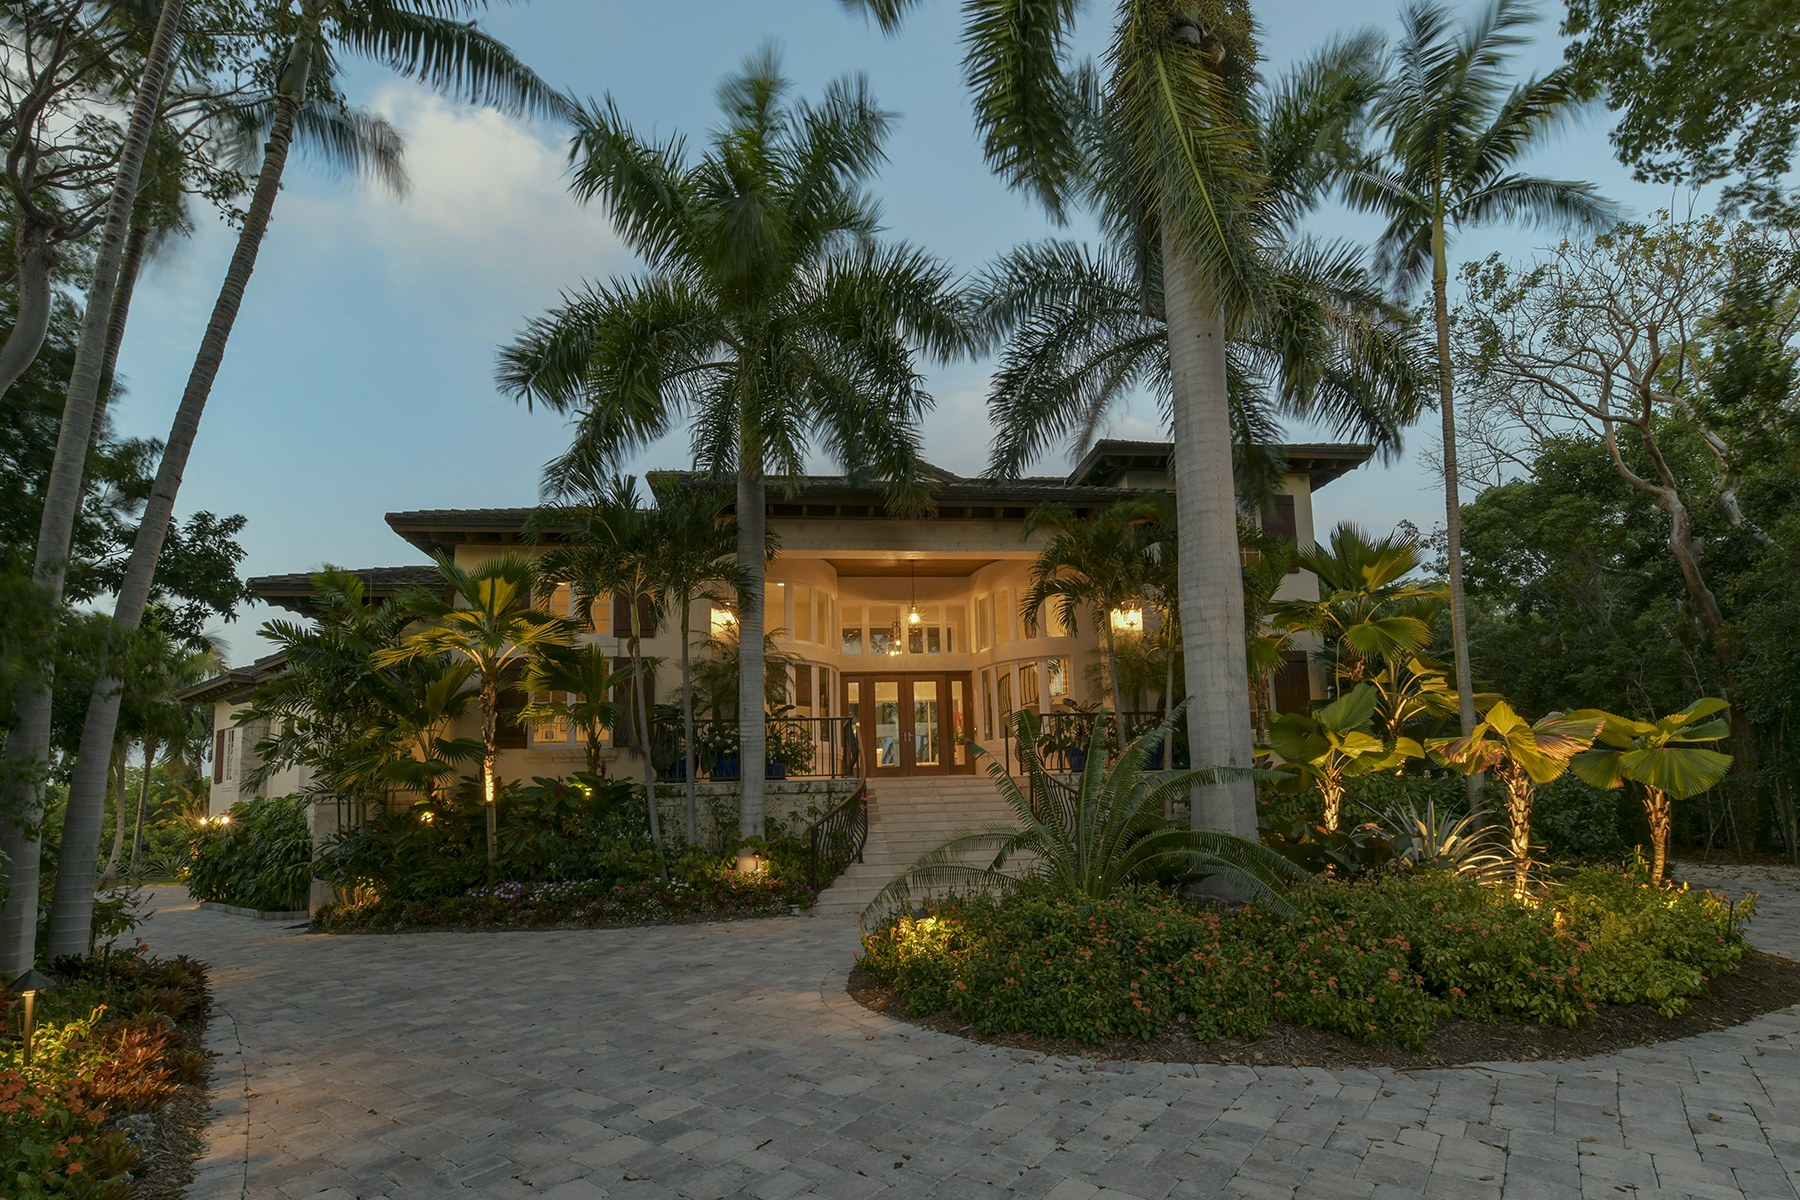 Single Family Homes for Sale at 24 Dispatch Creek Court, Key Largo, FL 24 Dispatch Creek Court Key Largo, Florida 33037 United States